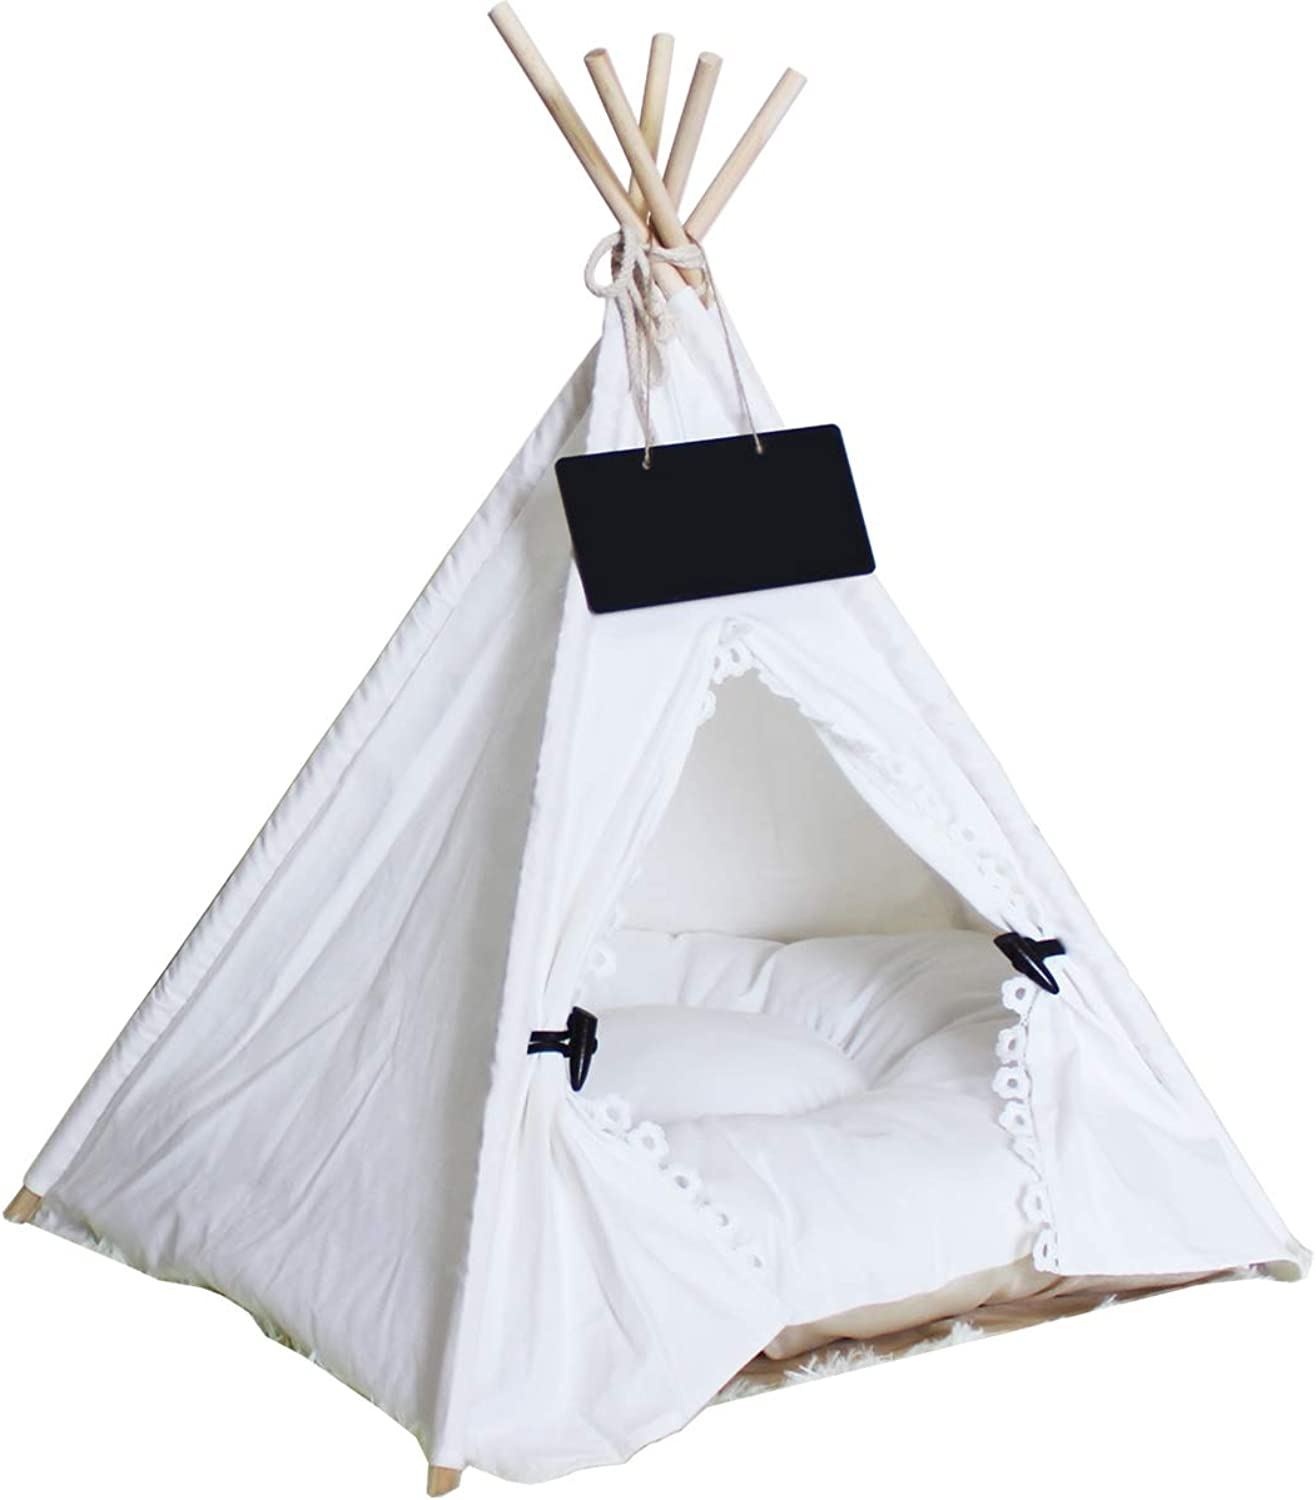 Penck Pet Teepee Dog Cat Bed  Portable Pet Tents Houses for Dog(Puppy) or Cat with Cushion 24 Inch Tall